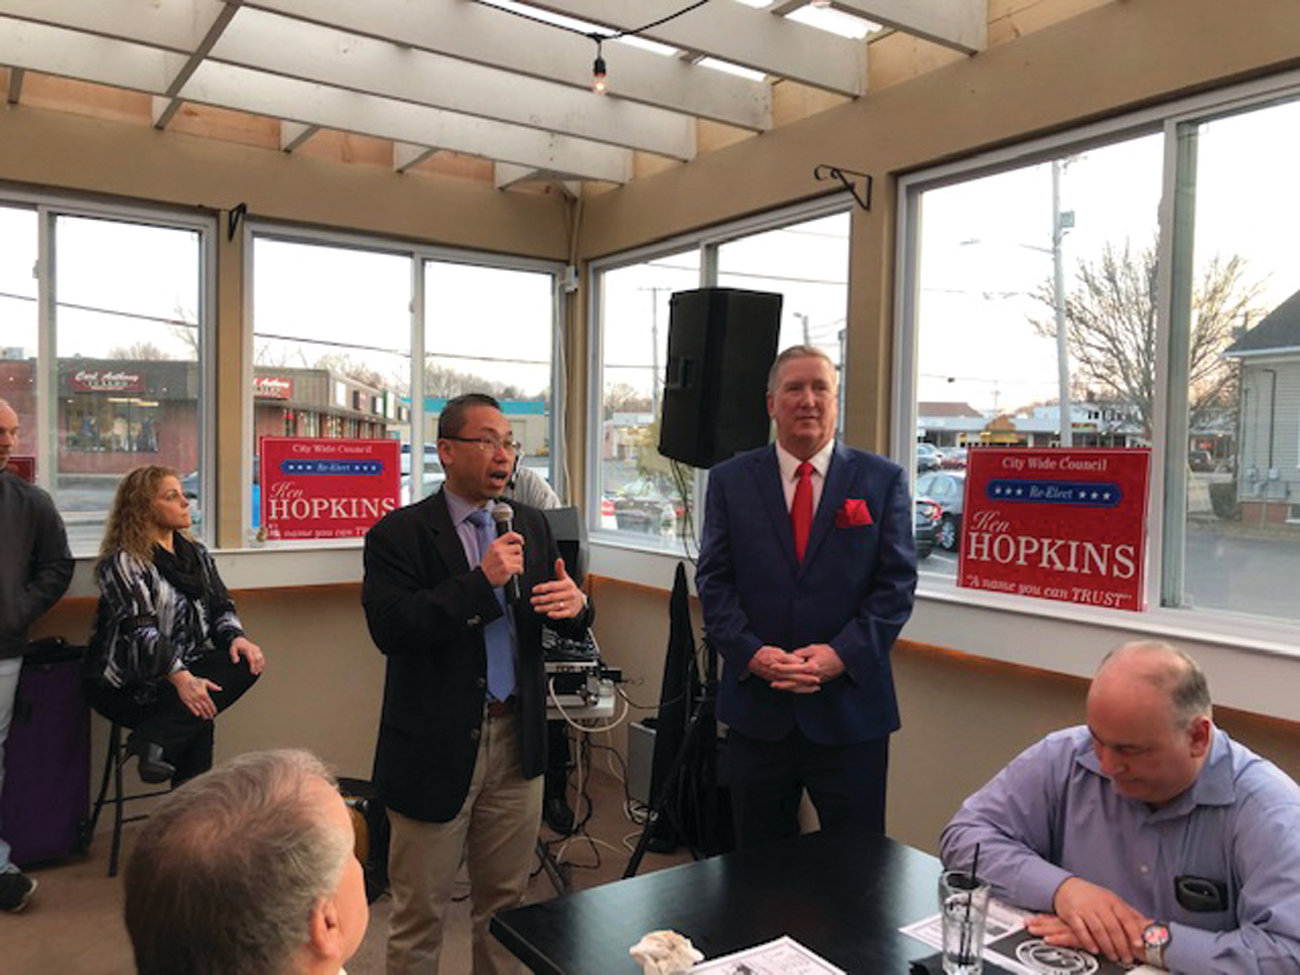 Mayor Allan Fung speaks during a 2019 fundraiser for Citywide Councilman Ken Hopkins. Fung on Monday endorsed Hopkins' bid to succeed him as mayor.